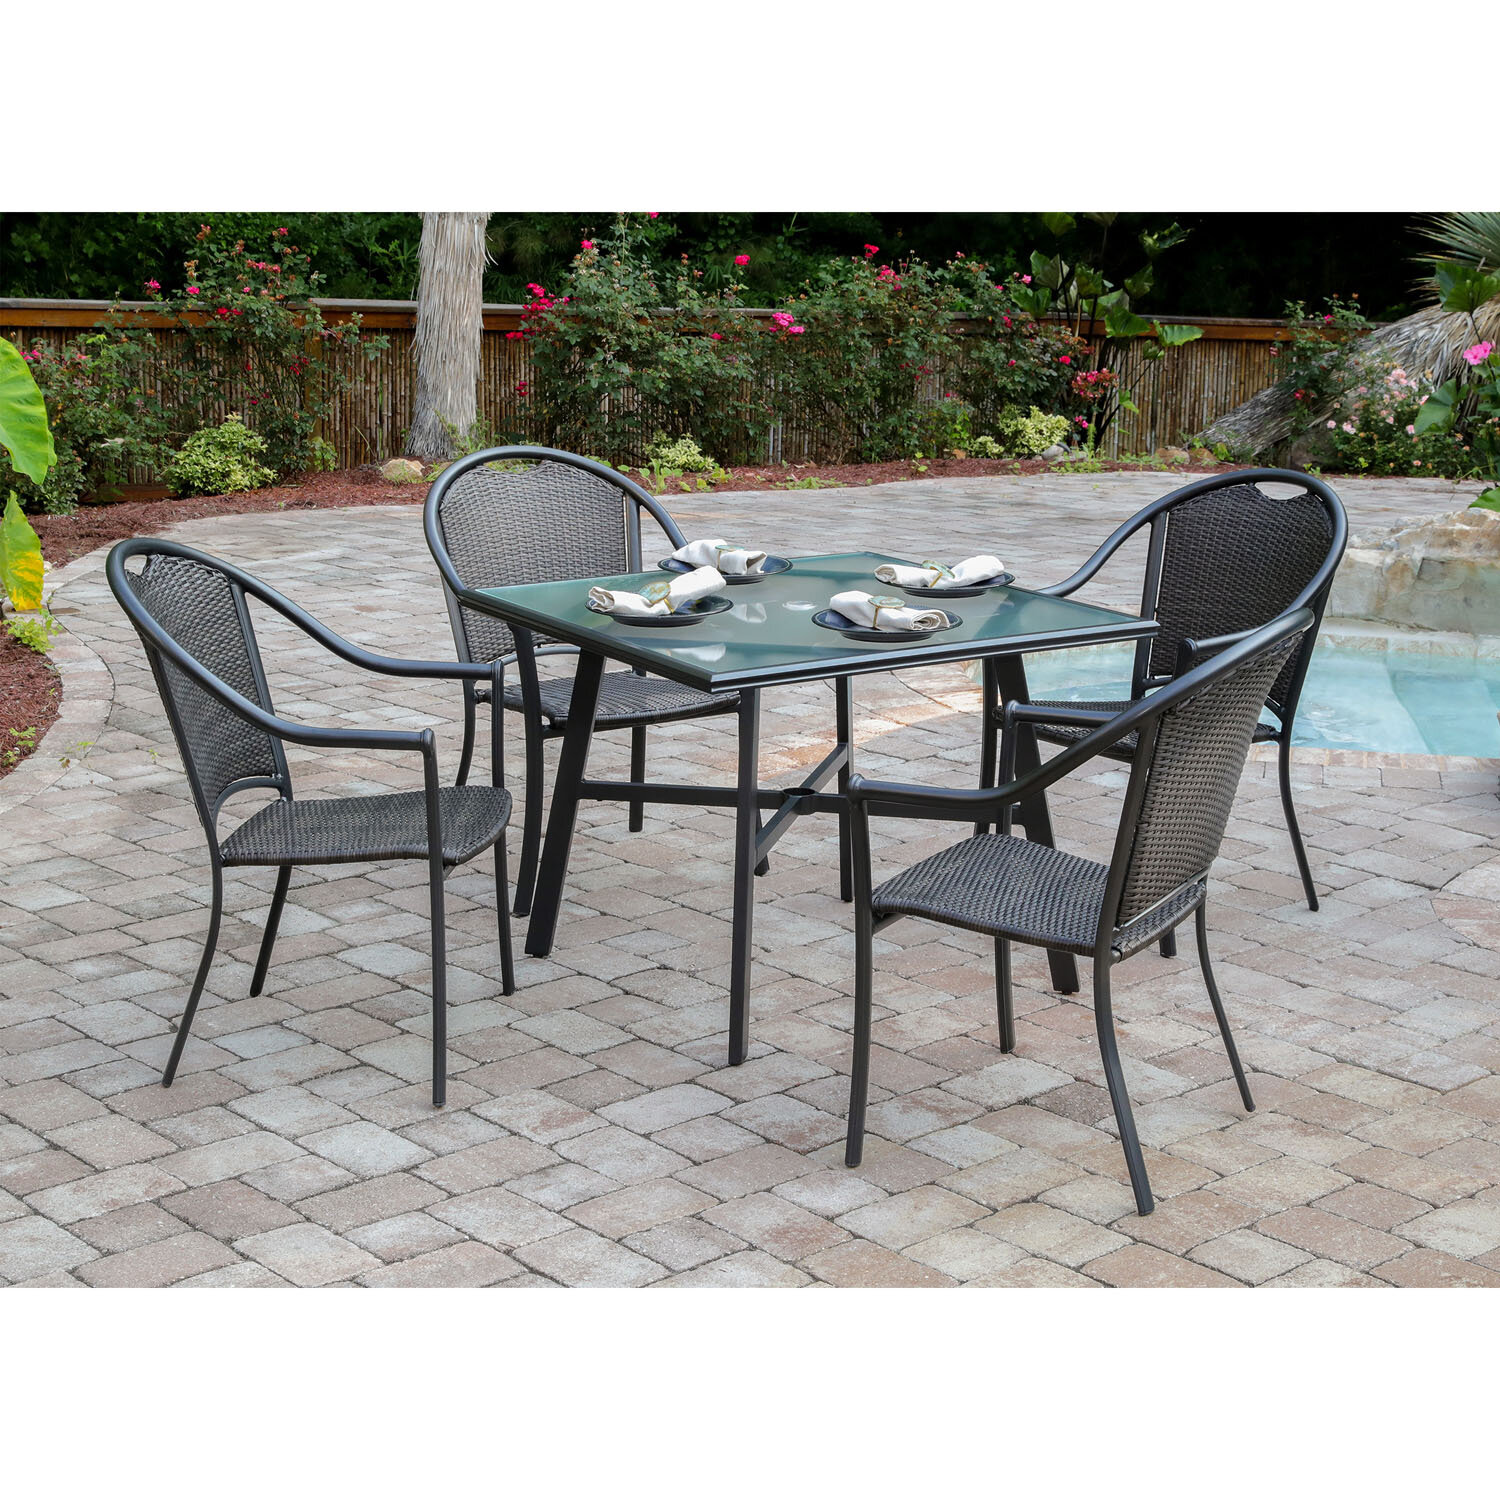 Charlton Home Bearden 5-Piece Commercial-Grade Patio Set with 4